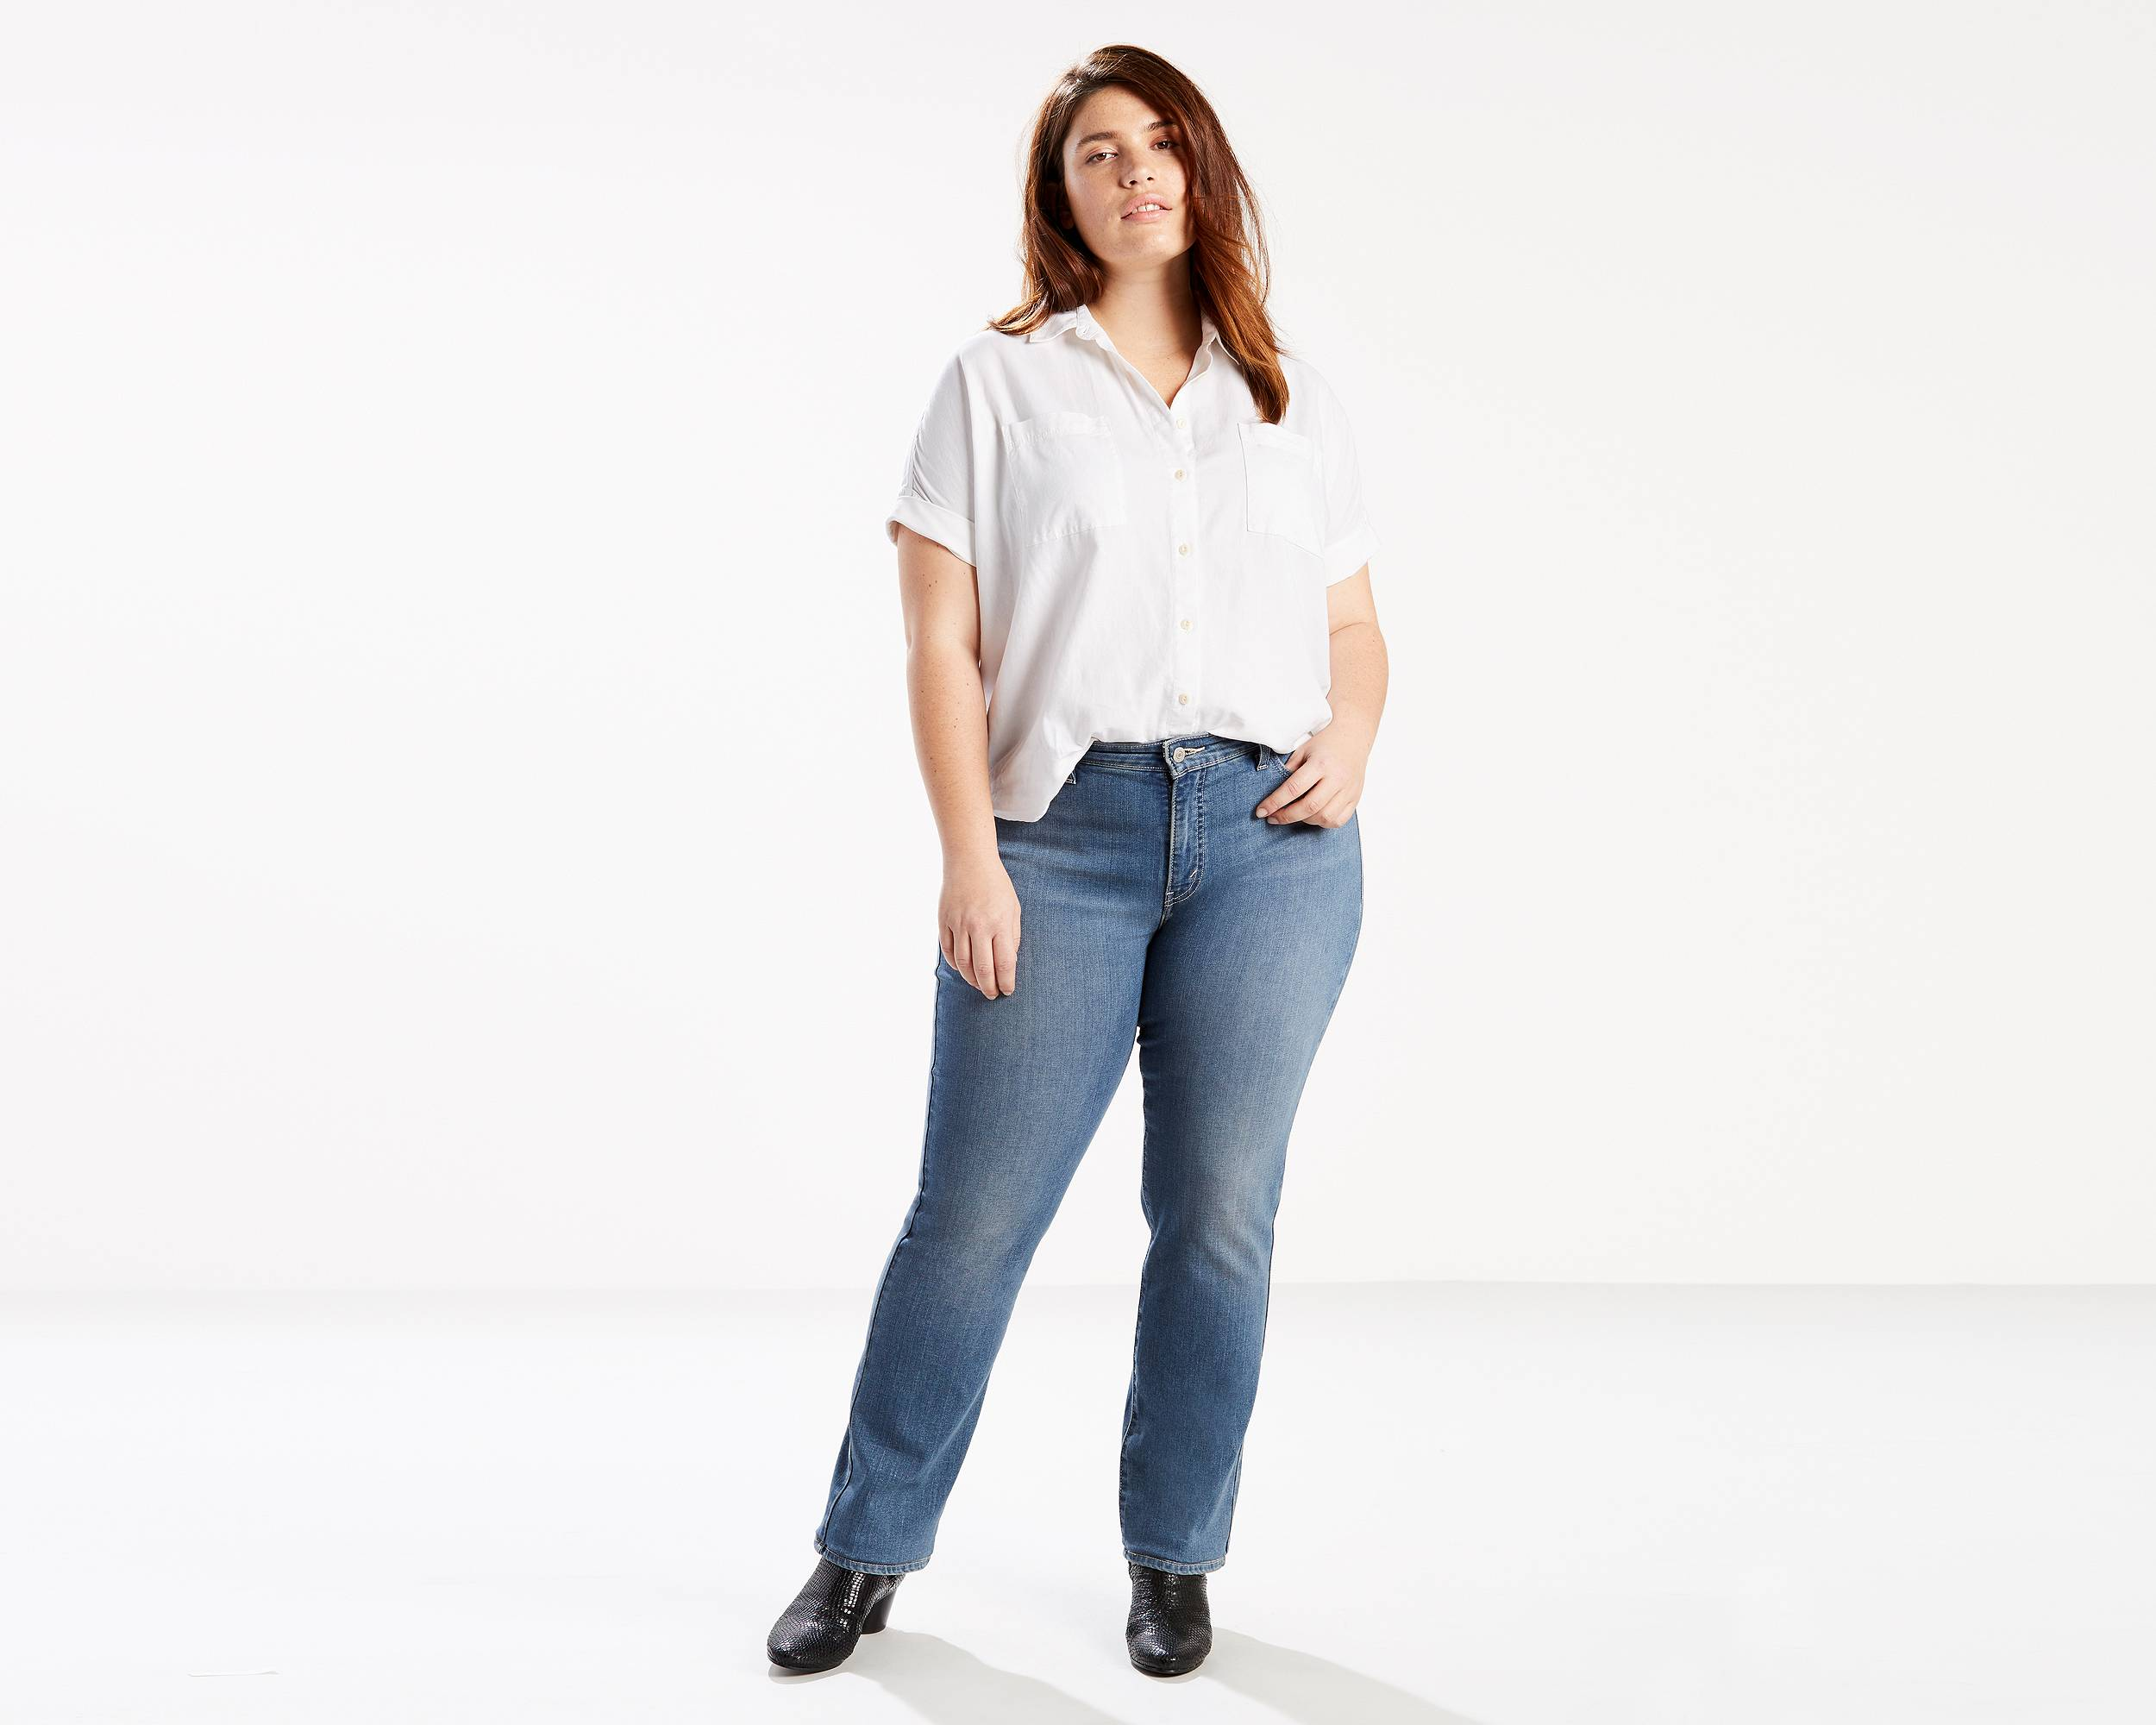 Flattering Jeans For Plus Size